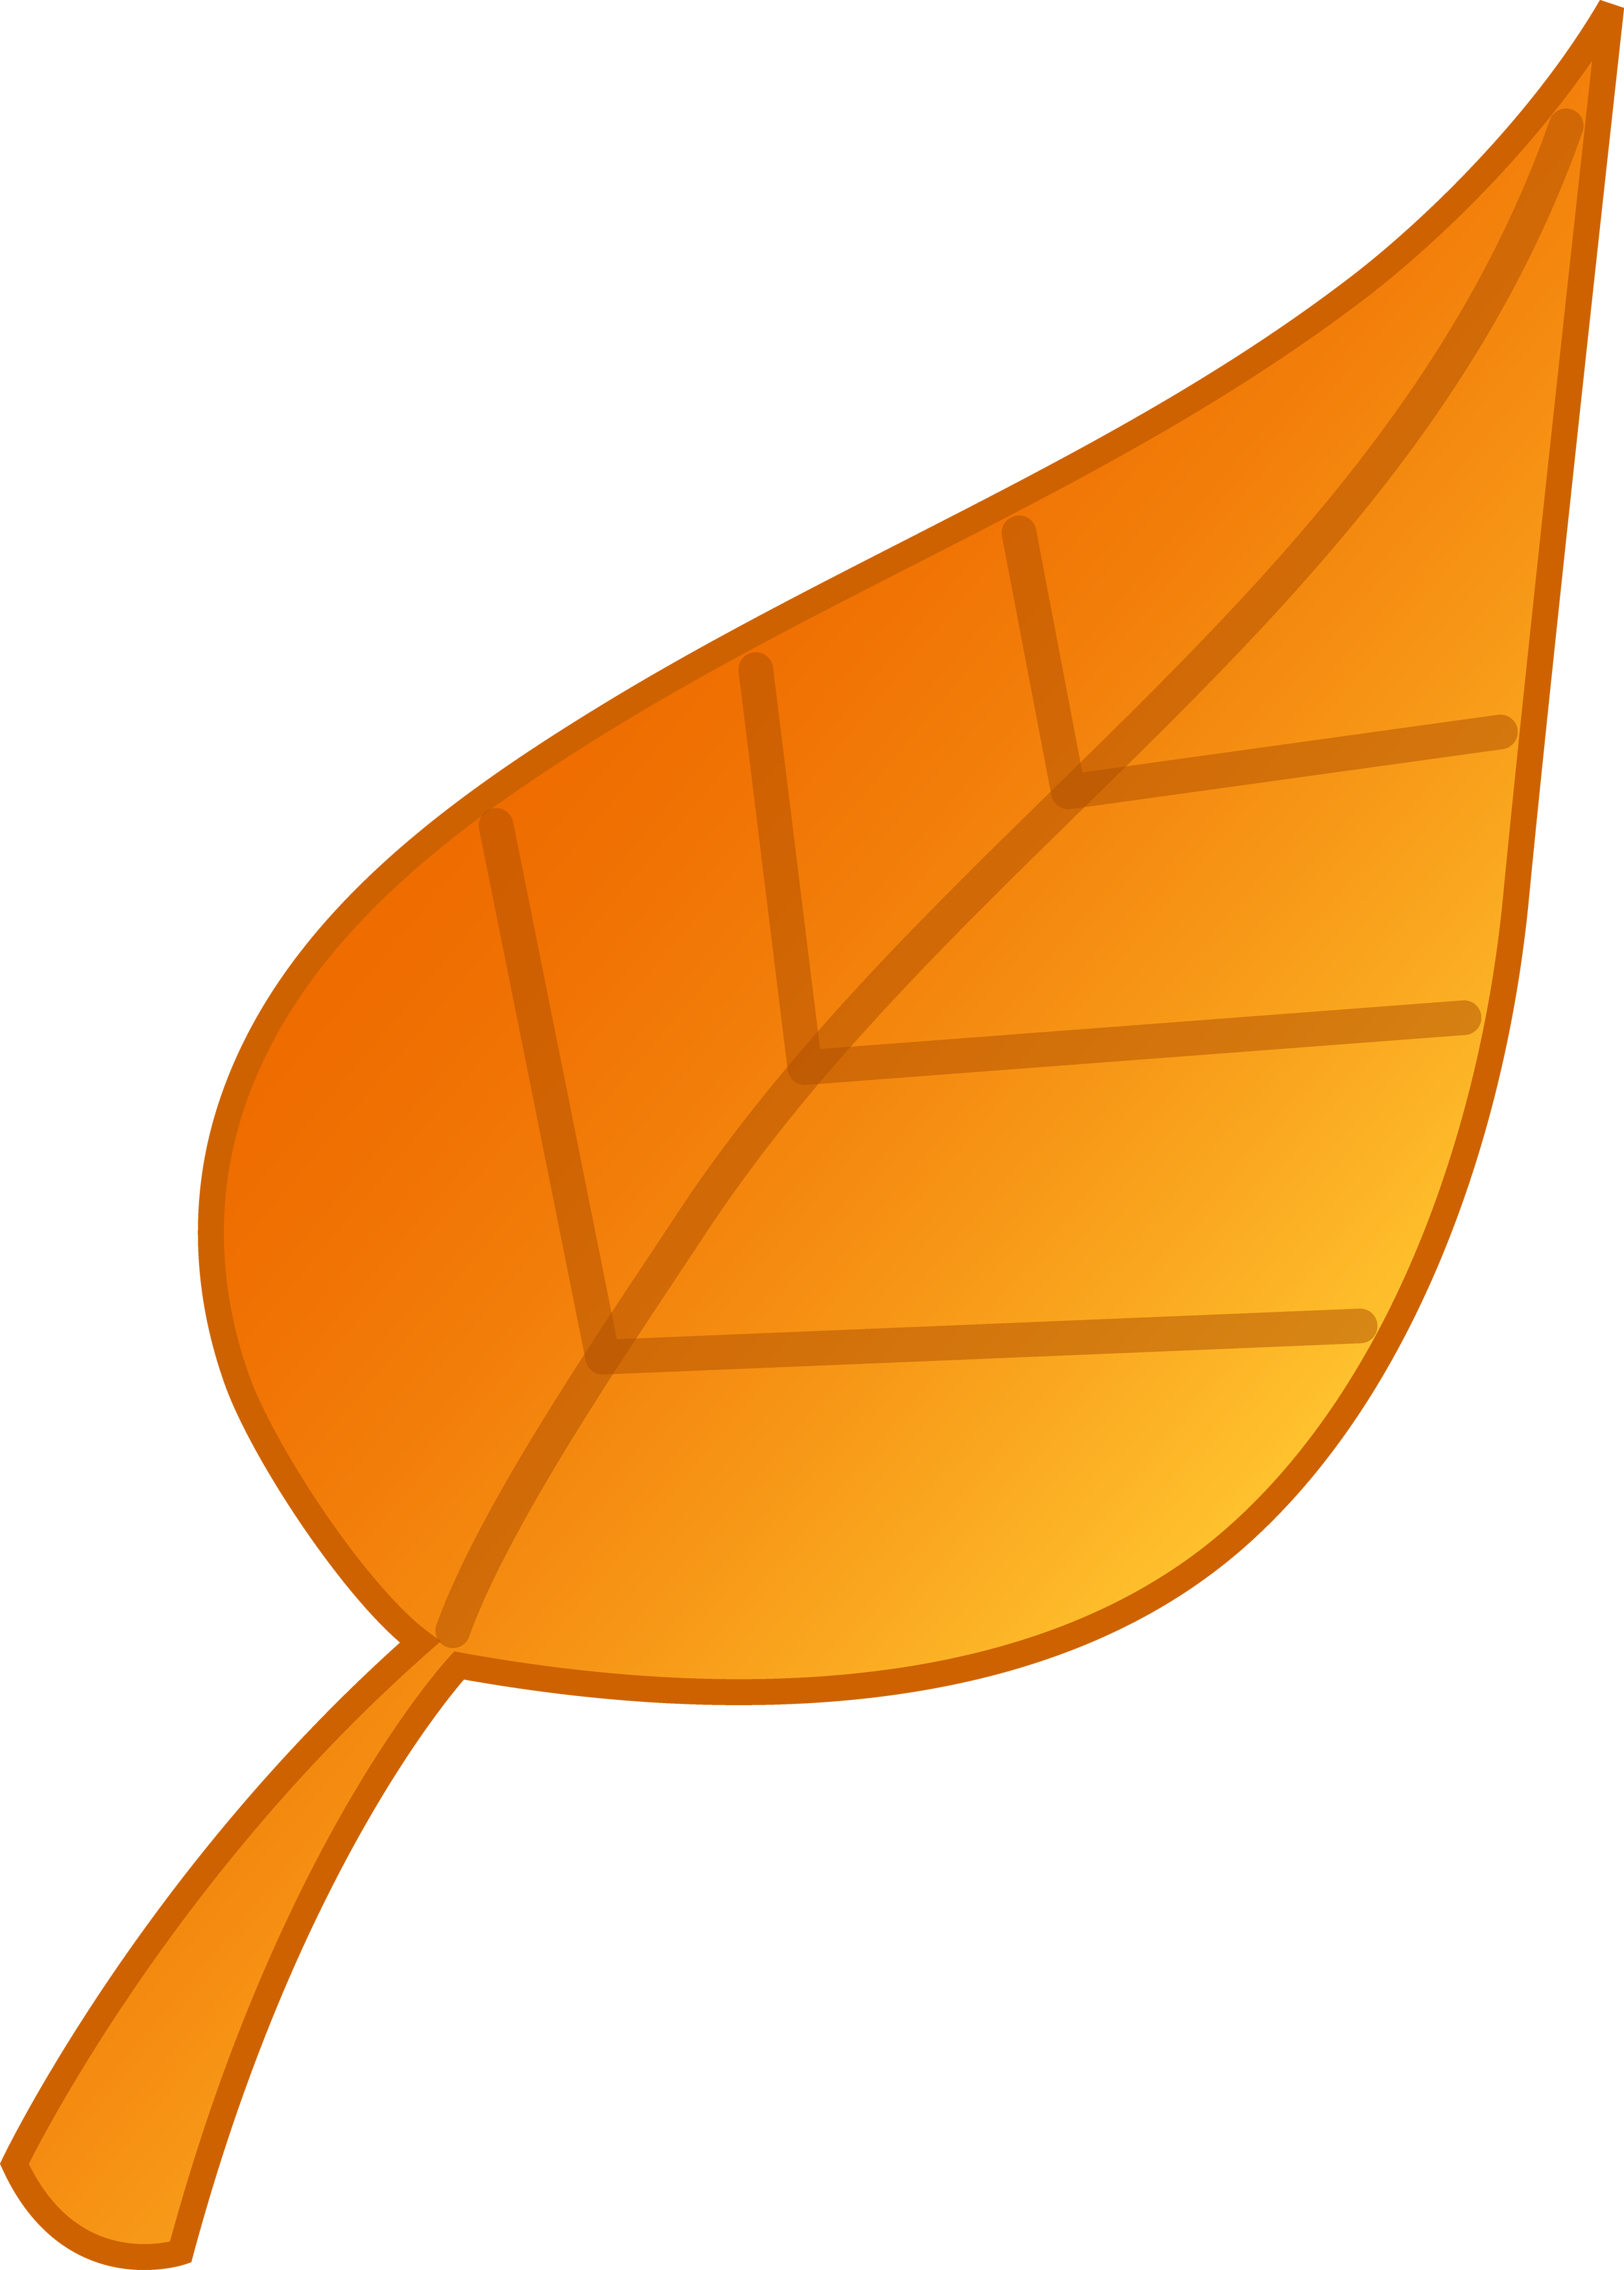 2504x3500 Leaf Fall Leaves Border Clipart Free Images 2